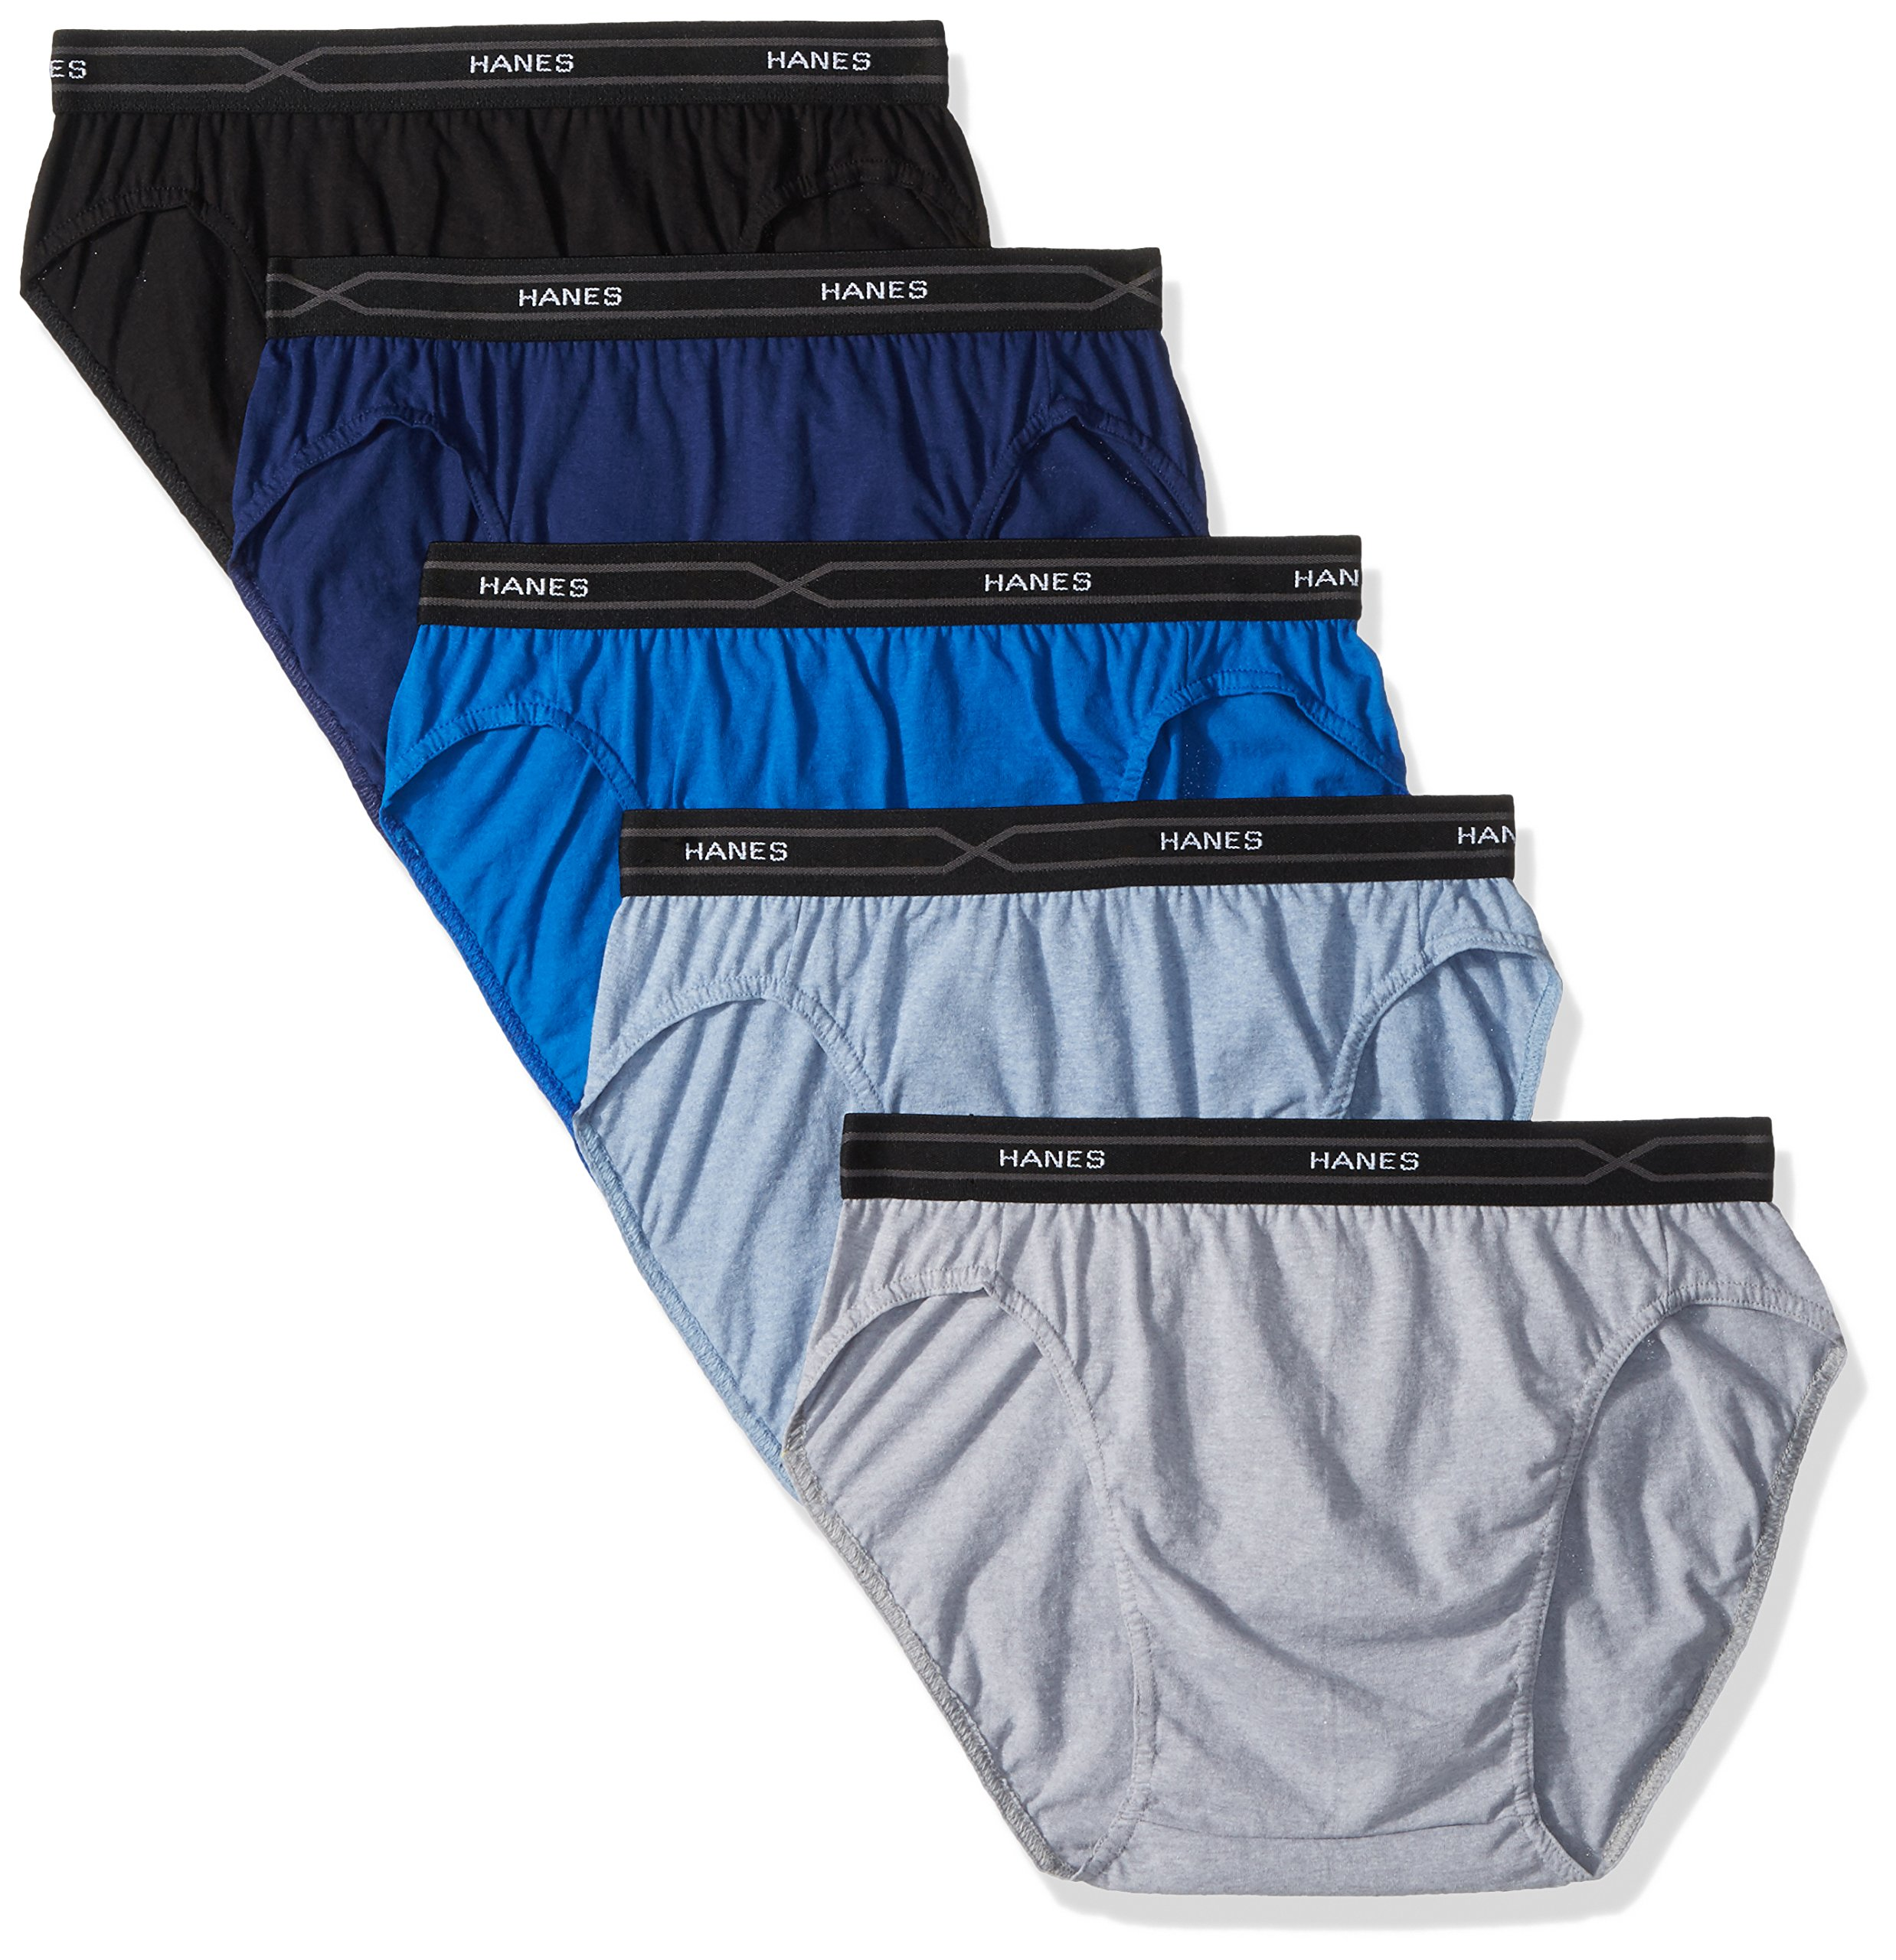 Hanes Men's 5-Pack X-Temp Low Rise Sport Brief, Assorted, Large by Hanes